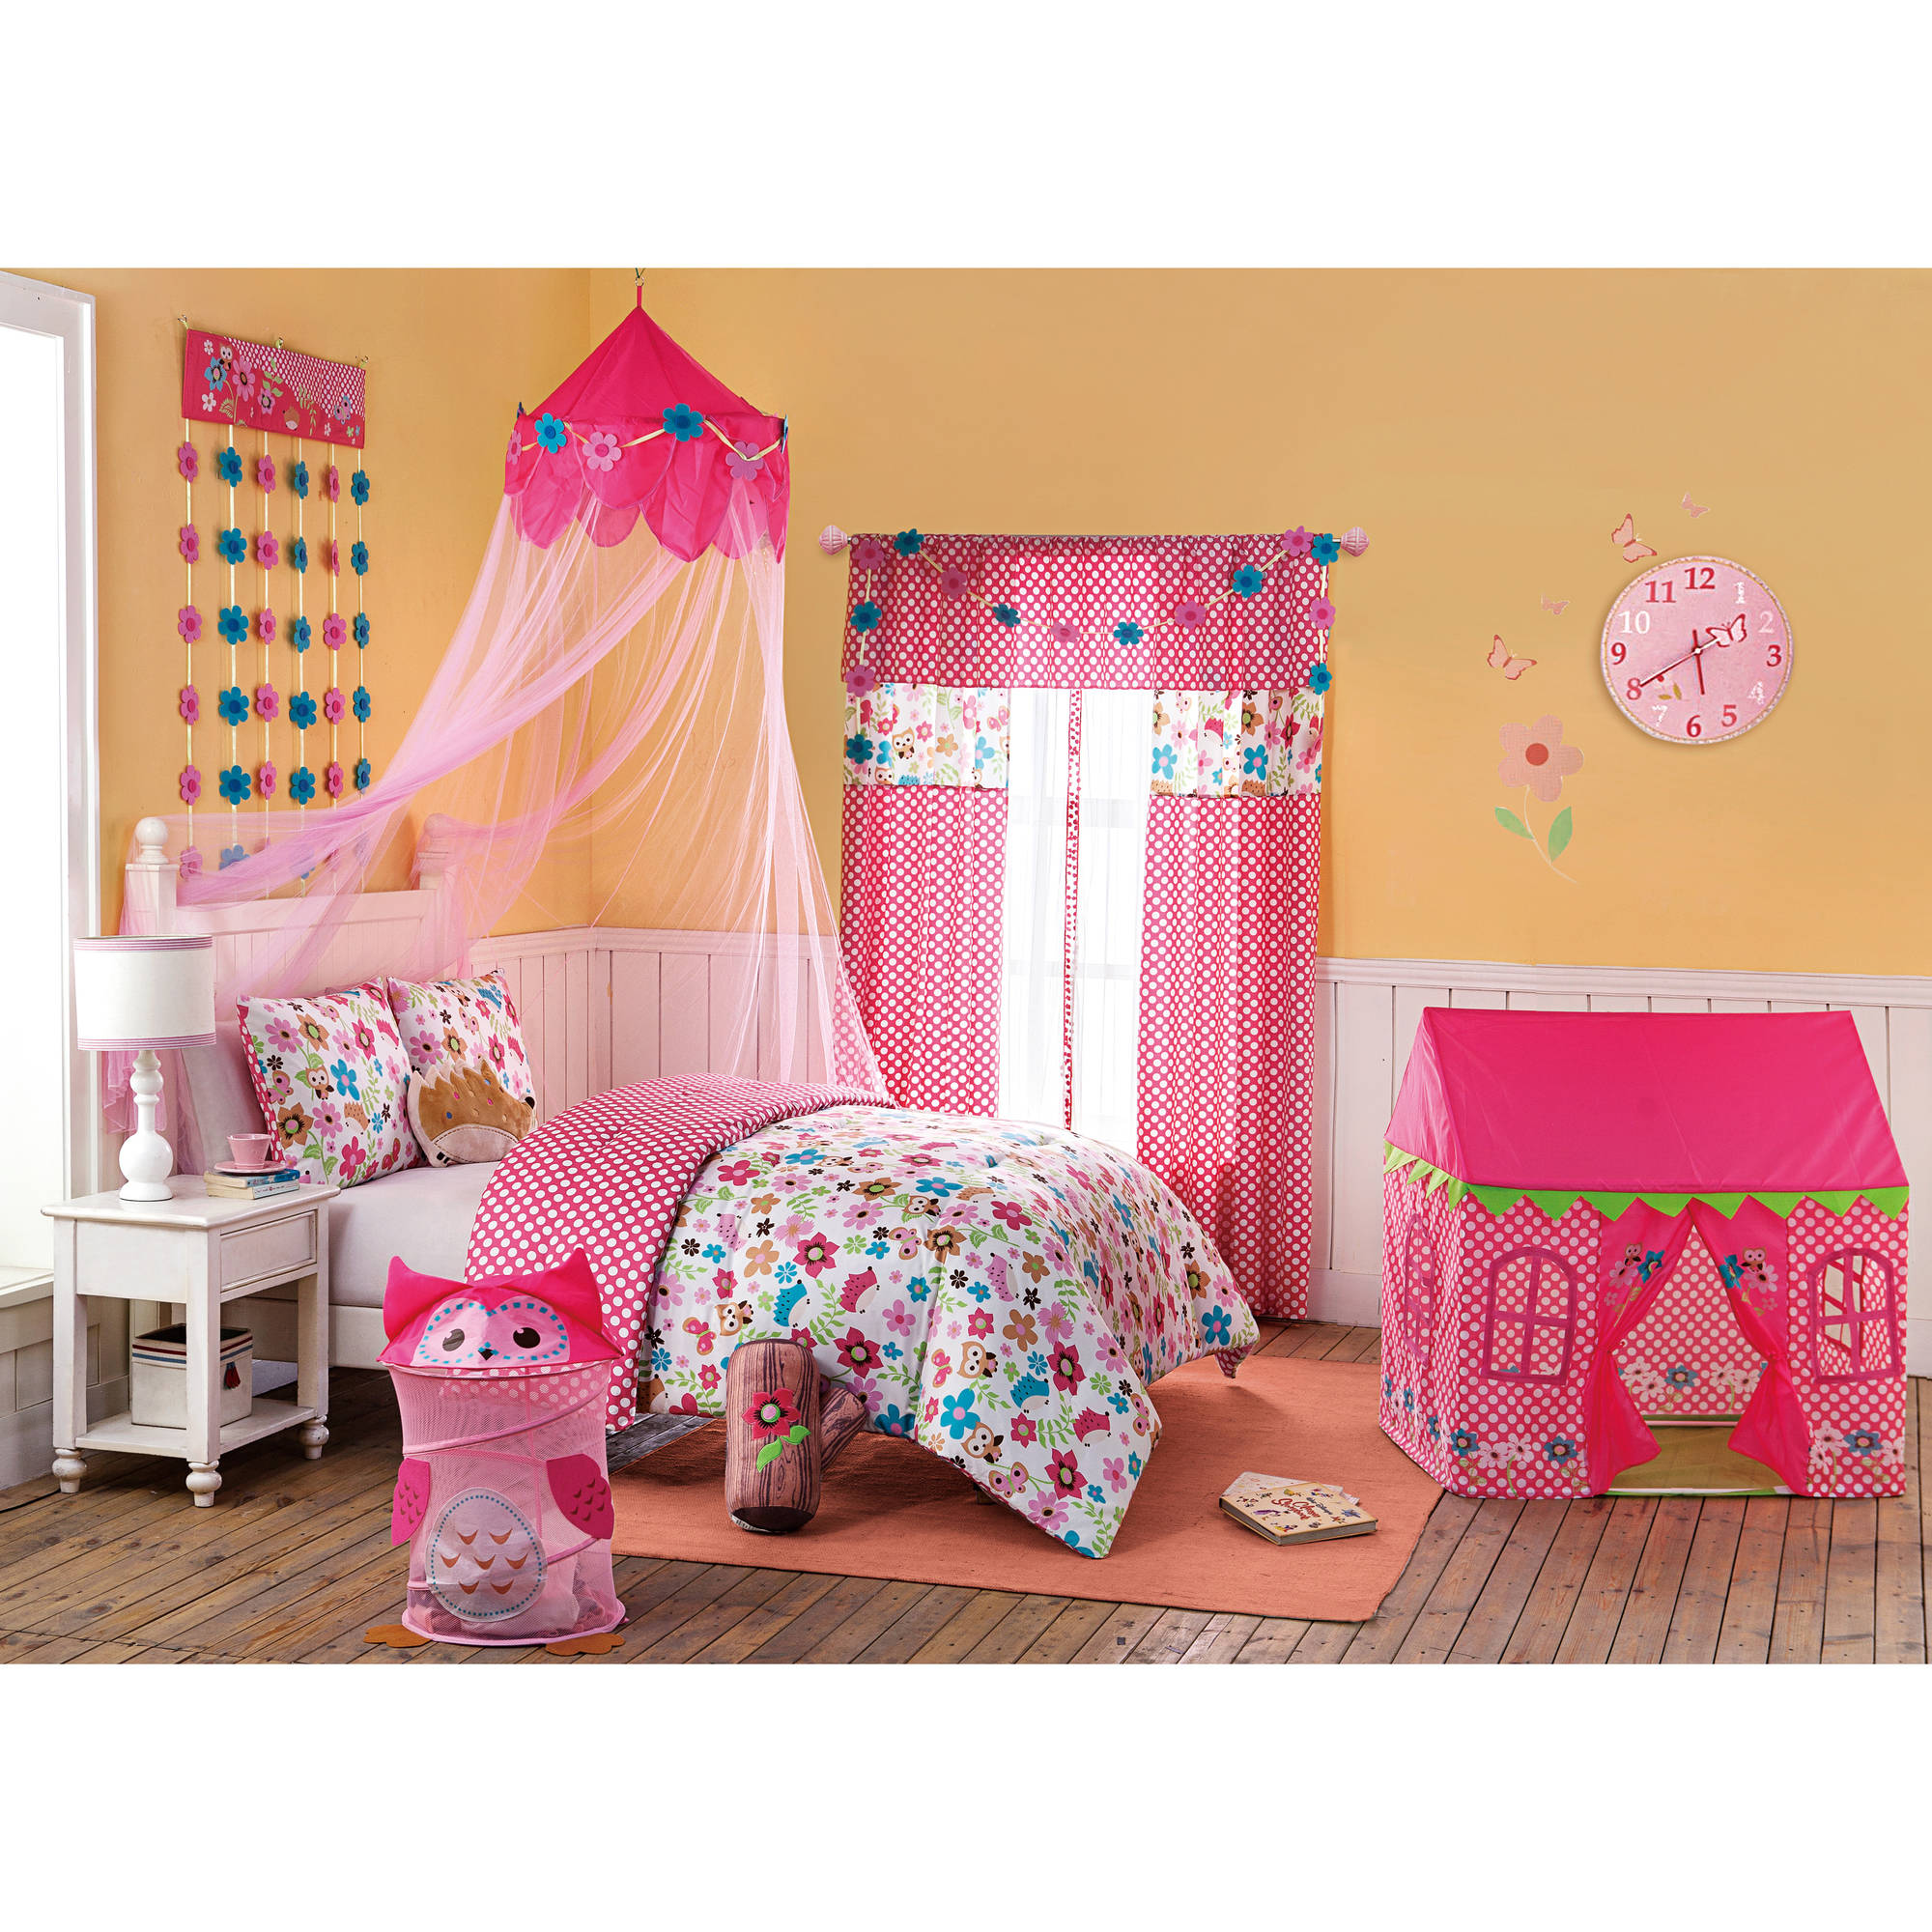 VCNY Home Big Believers Magical Garden Pink Polka Dot Pop-Up Kids Play Tent - Walmart.com  sc 1 st  Walmart : walmart pop up tent - memphite.com